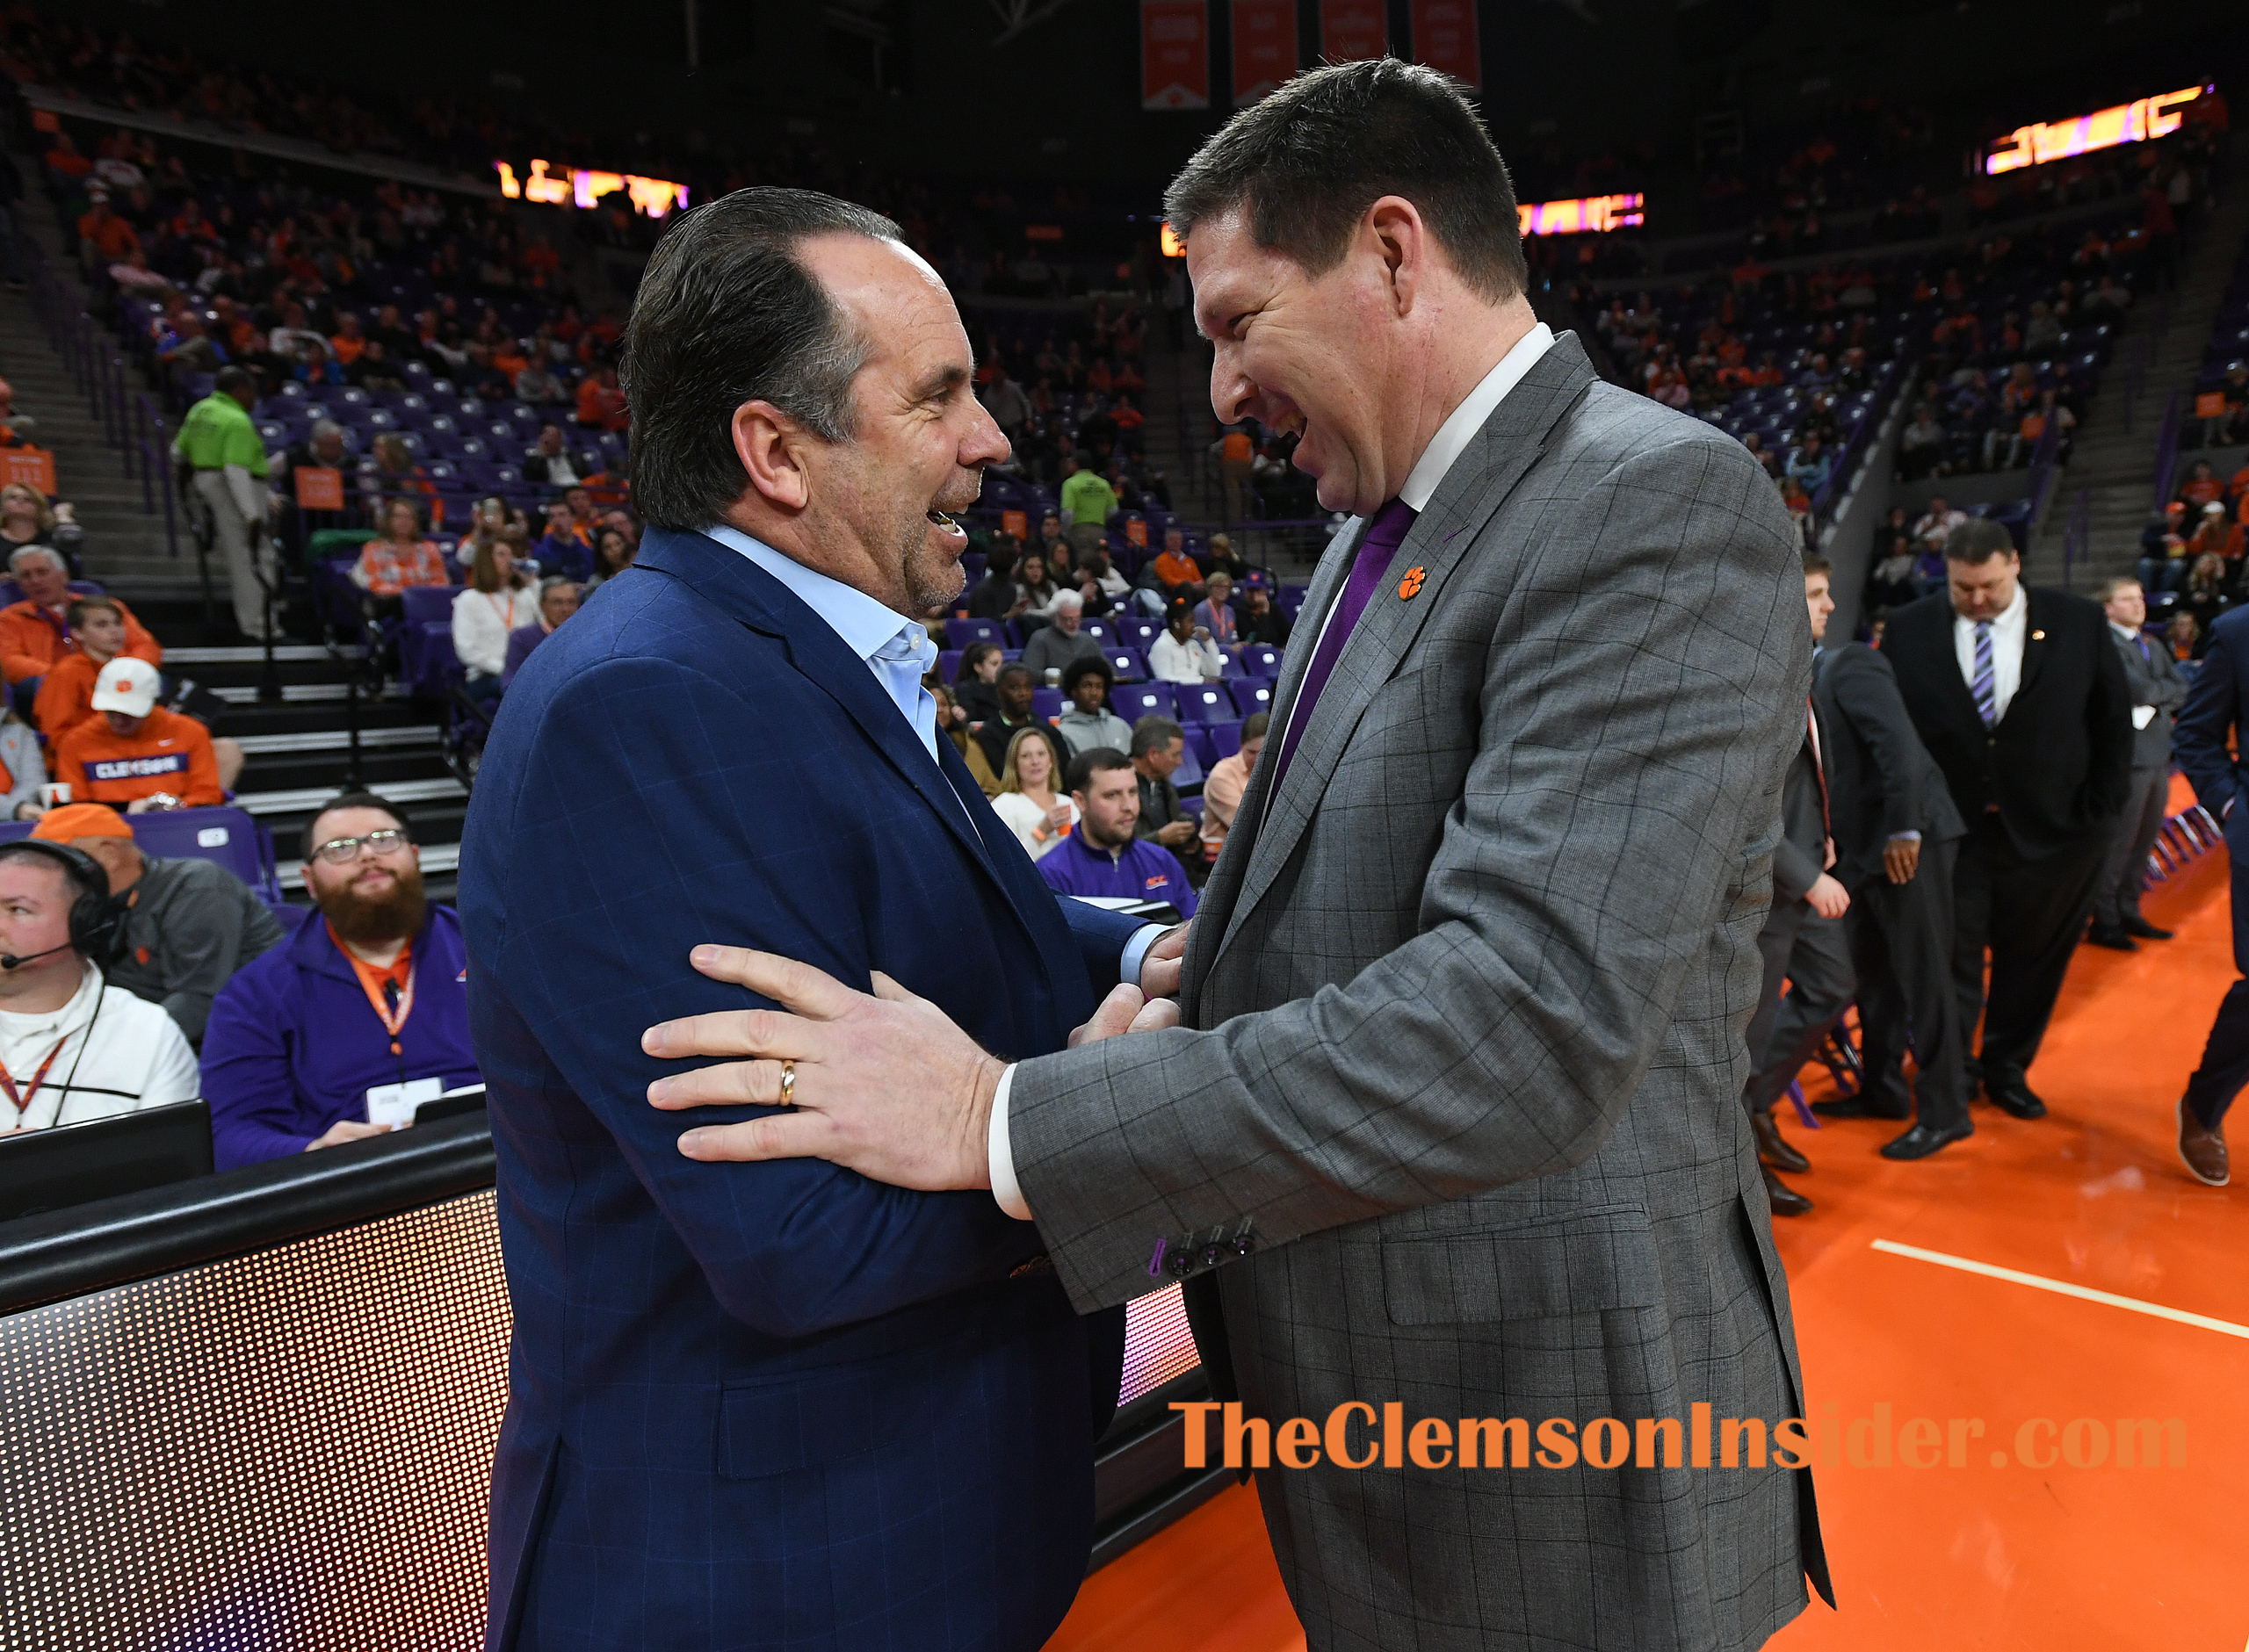 Notre Dame head coach Mike Brey shakes hands with Clemson head coach Brad Brownell before their game Sunday, February 9, 2020 at Clemson's Littlejohn Coliseum. Bart Boatwright/The Clemson Insider